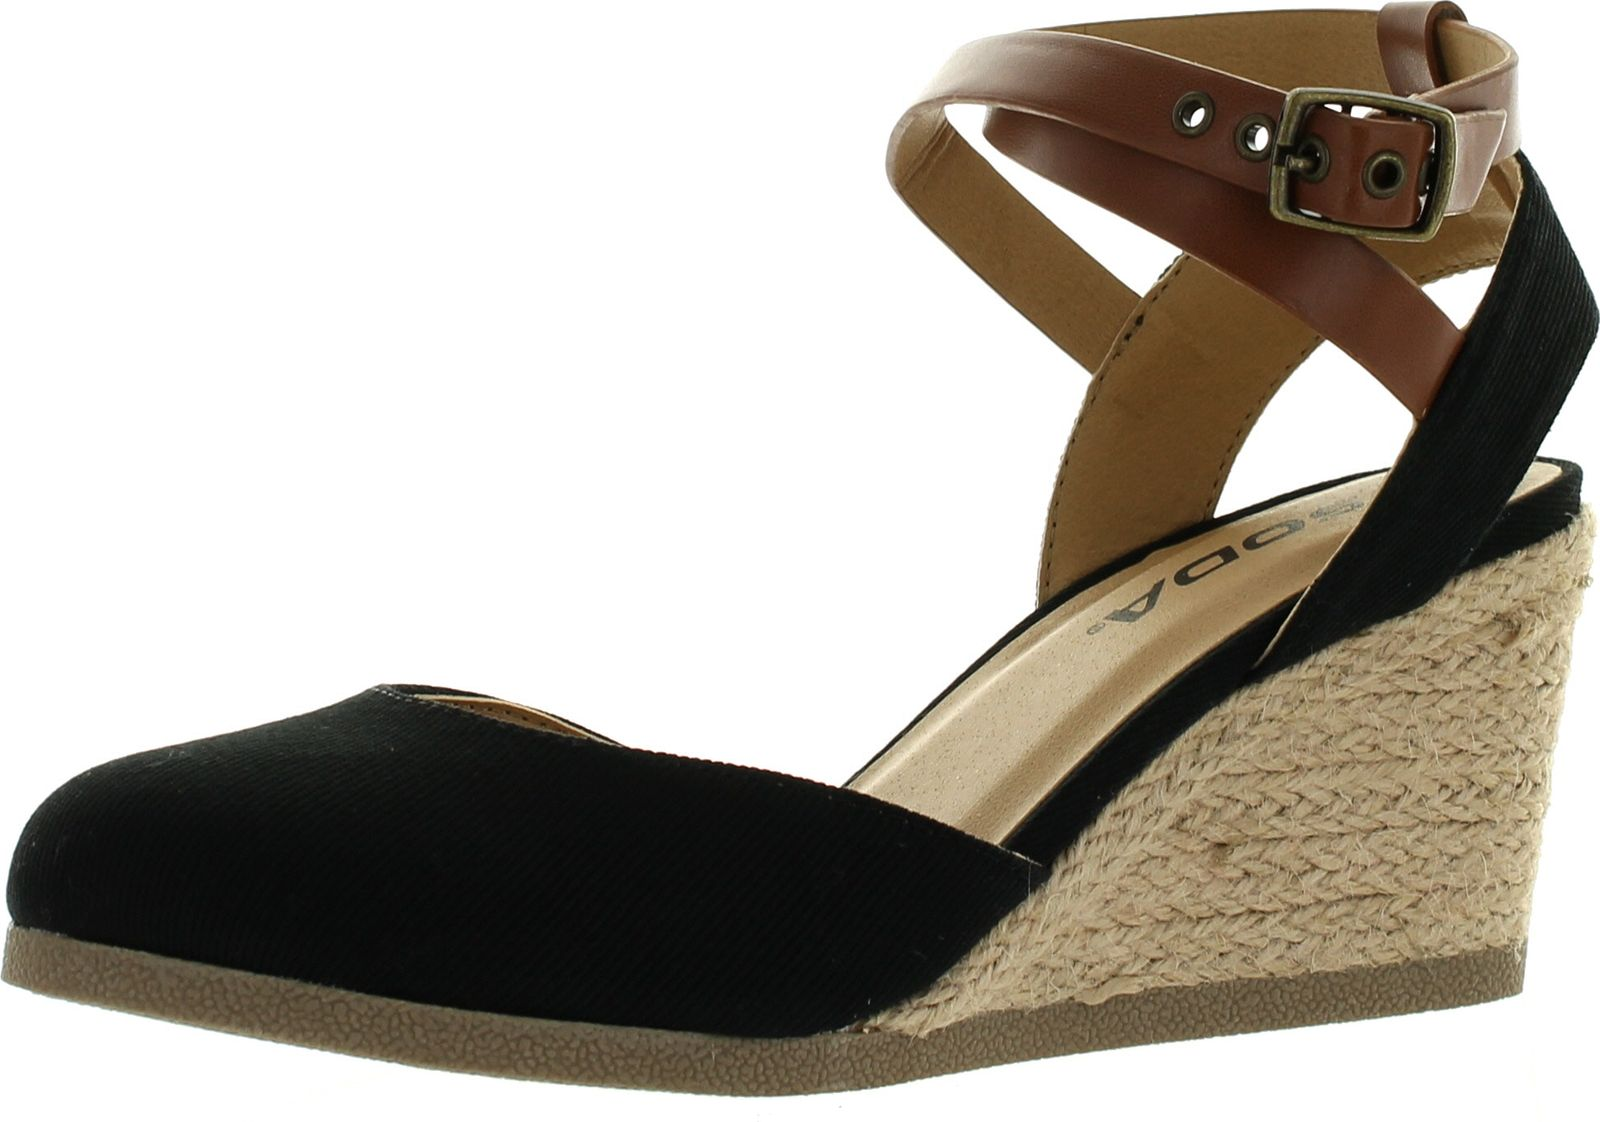 Find great deals on eBay for Closed Toe Espadrilles in Women's Clothing, Shoes and Heels. Shop with confidence. Find great deals on eBay for Closed Toe Espadrilles in Women's Clothing, Shoes and Heels. Shop with confidence. Skip to main content. eBay: Shop by category Soda Womens Request Closed Toe Espadrille Wedge Sandal in Black Dark Tan.